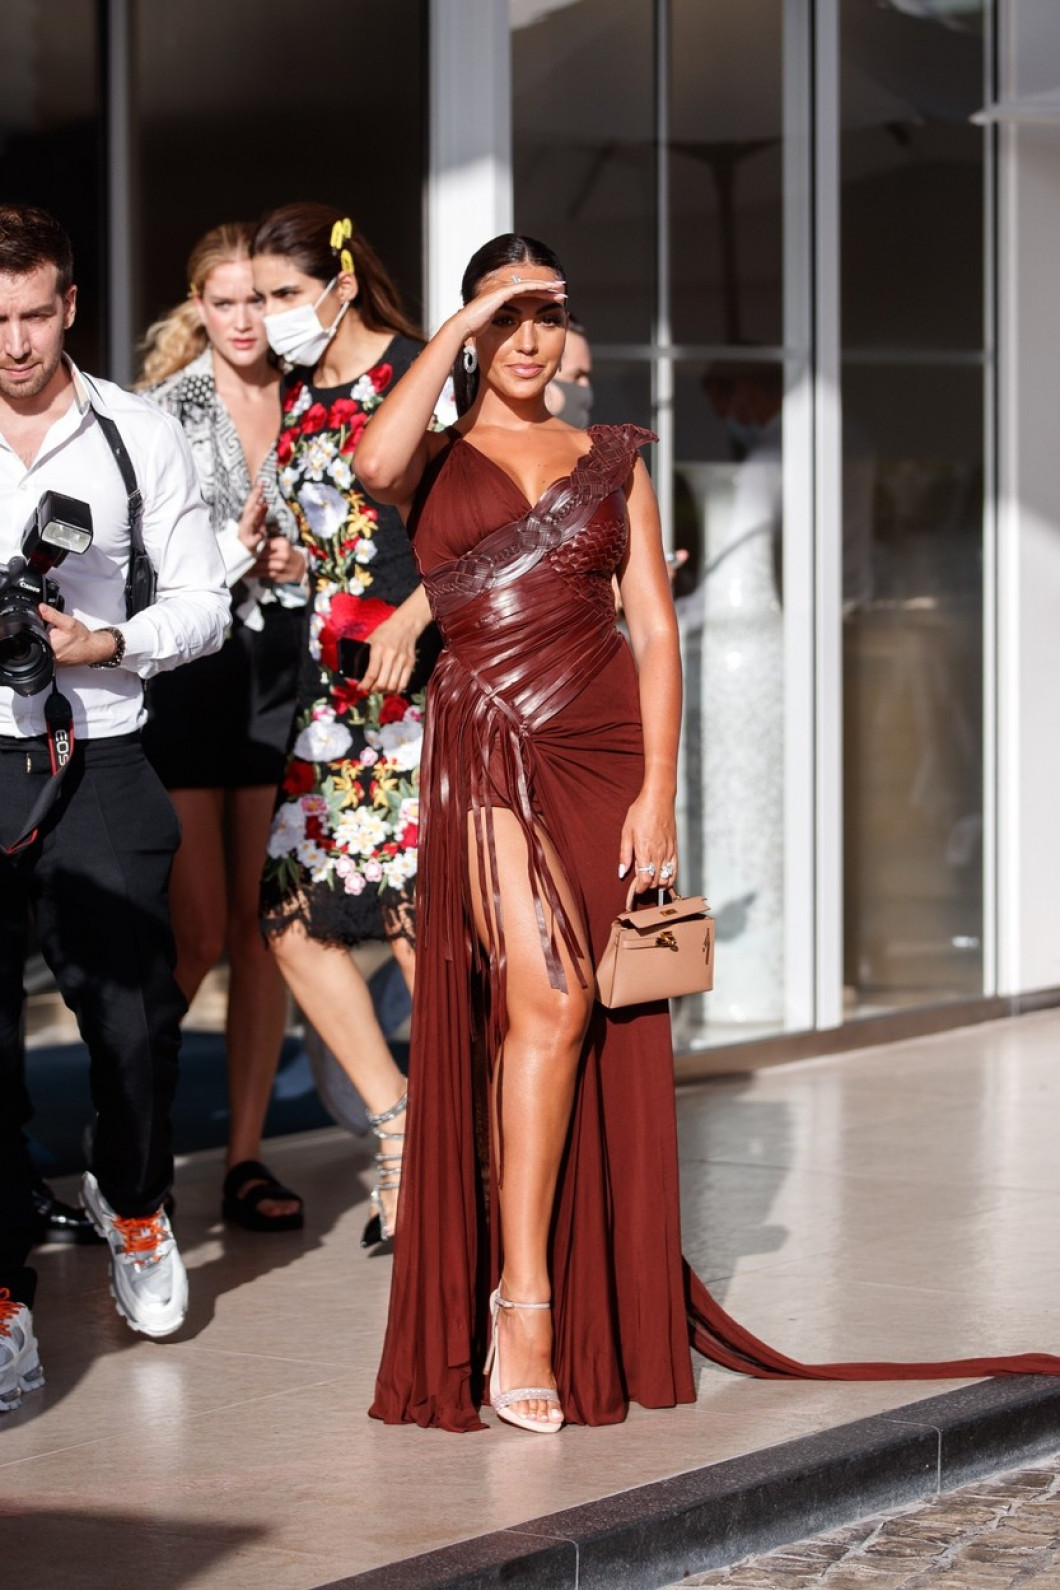 Georgina Rodriguez spotted at the Martinez Hotel in a long burgundy dress during the 74th Cannes Film Festival.